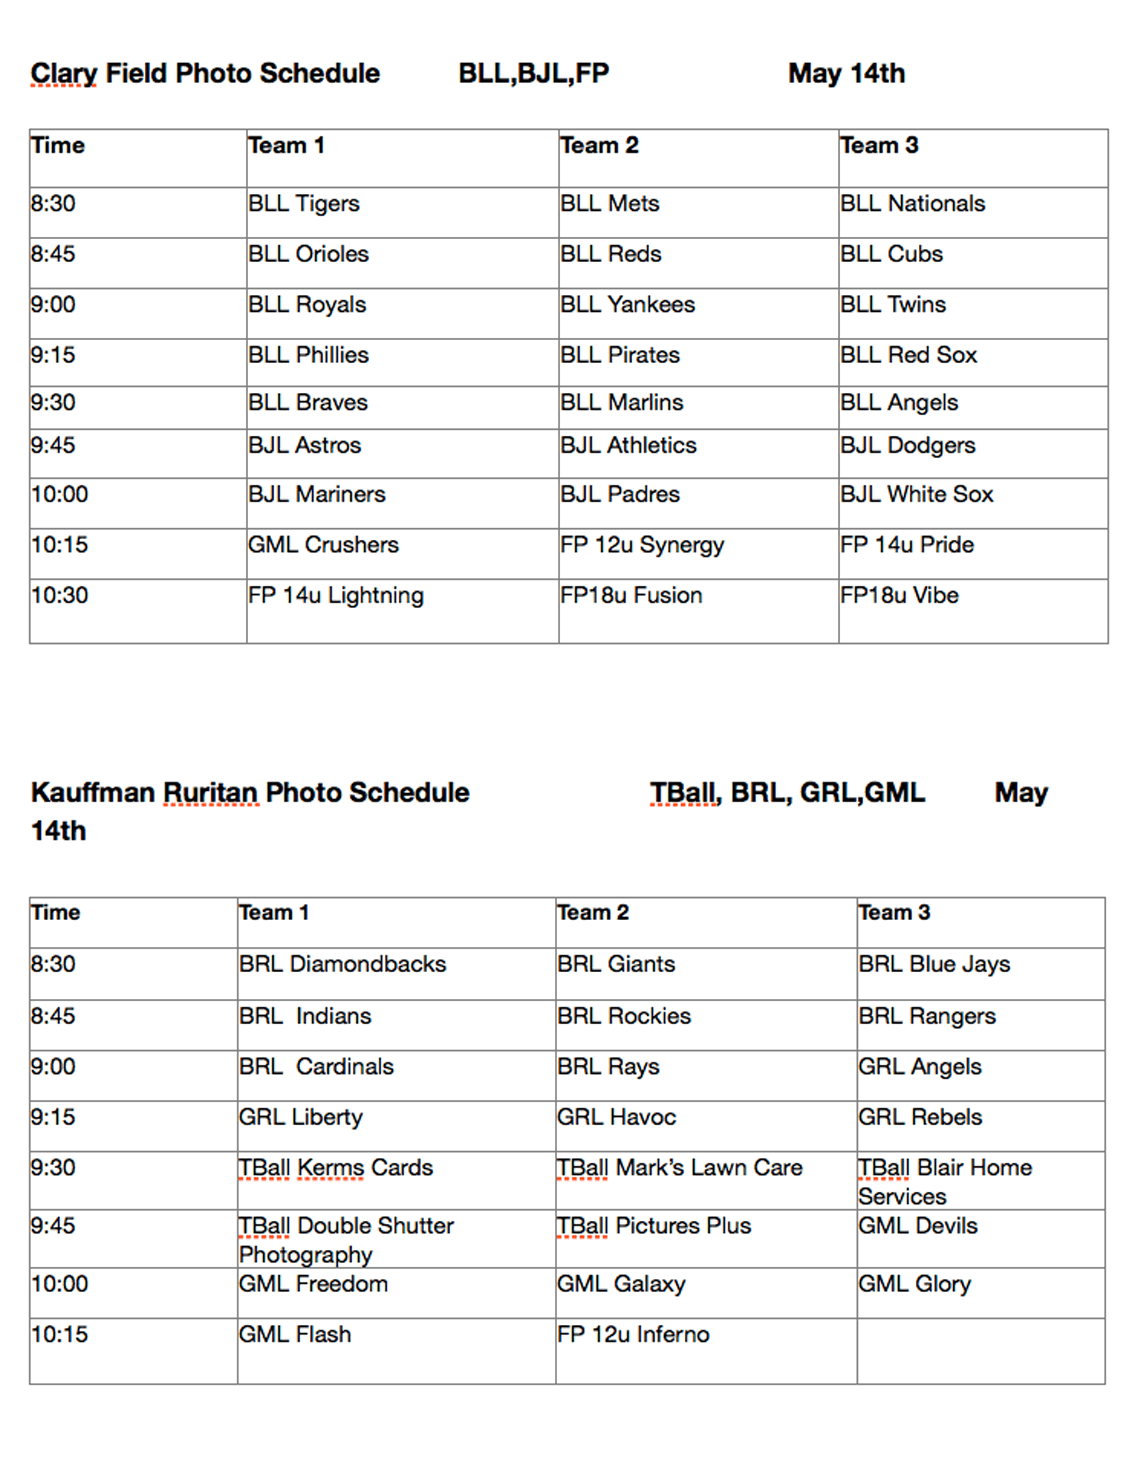 picture-schedule